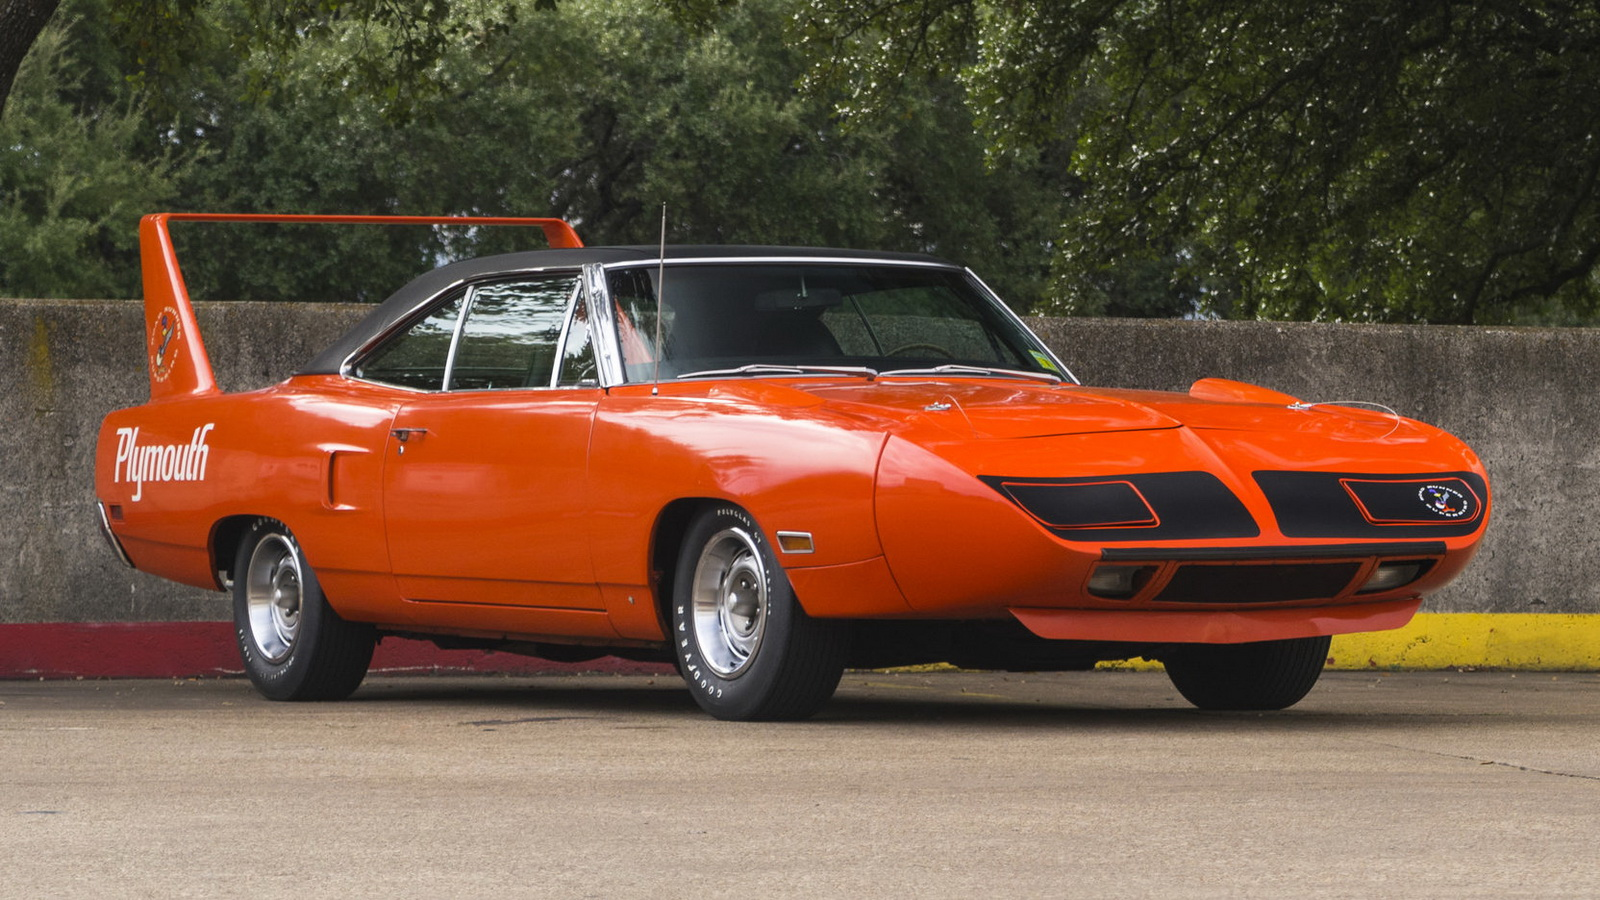 Plymouth Hemi Superbird 1970 in auction (12)